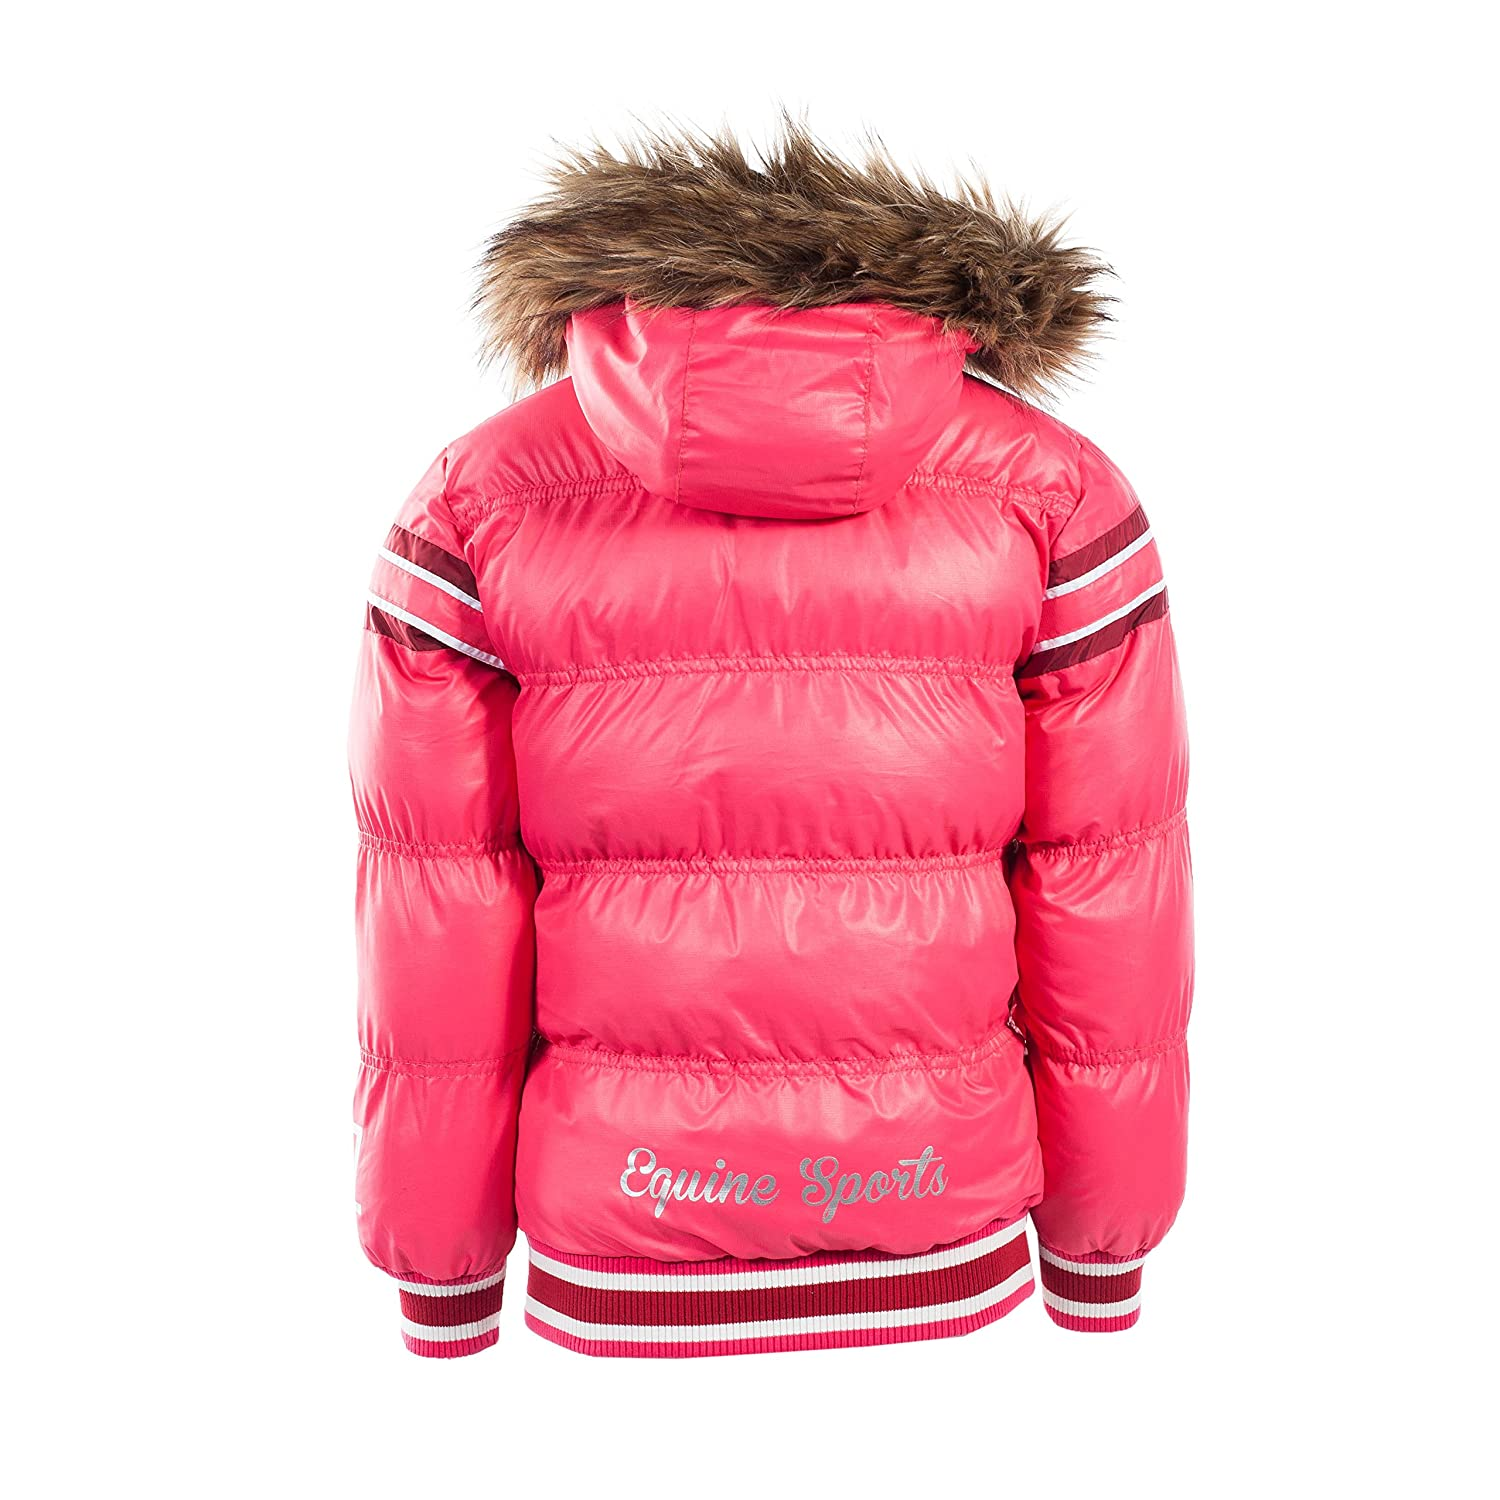 Hot Pink 12 Horze Kids /& Ponies Padded Jacket with Reomvable Hood Medium